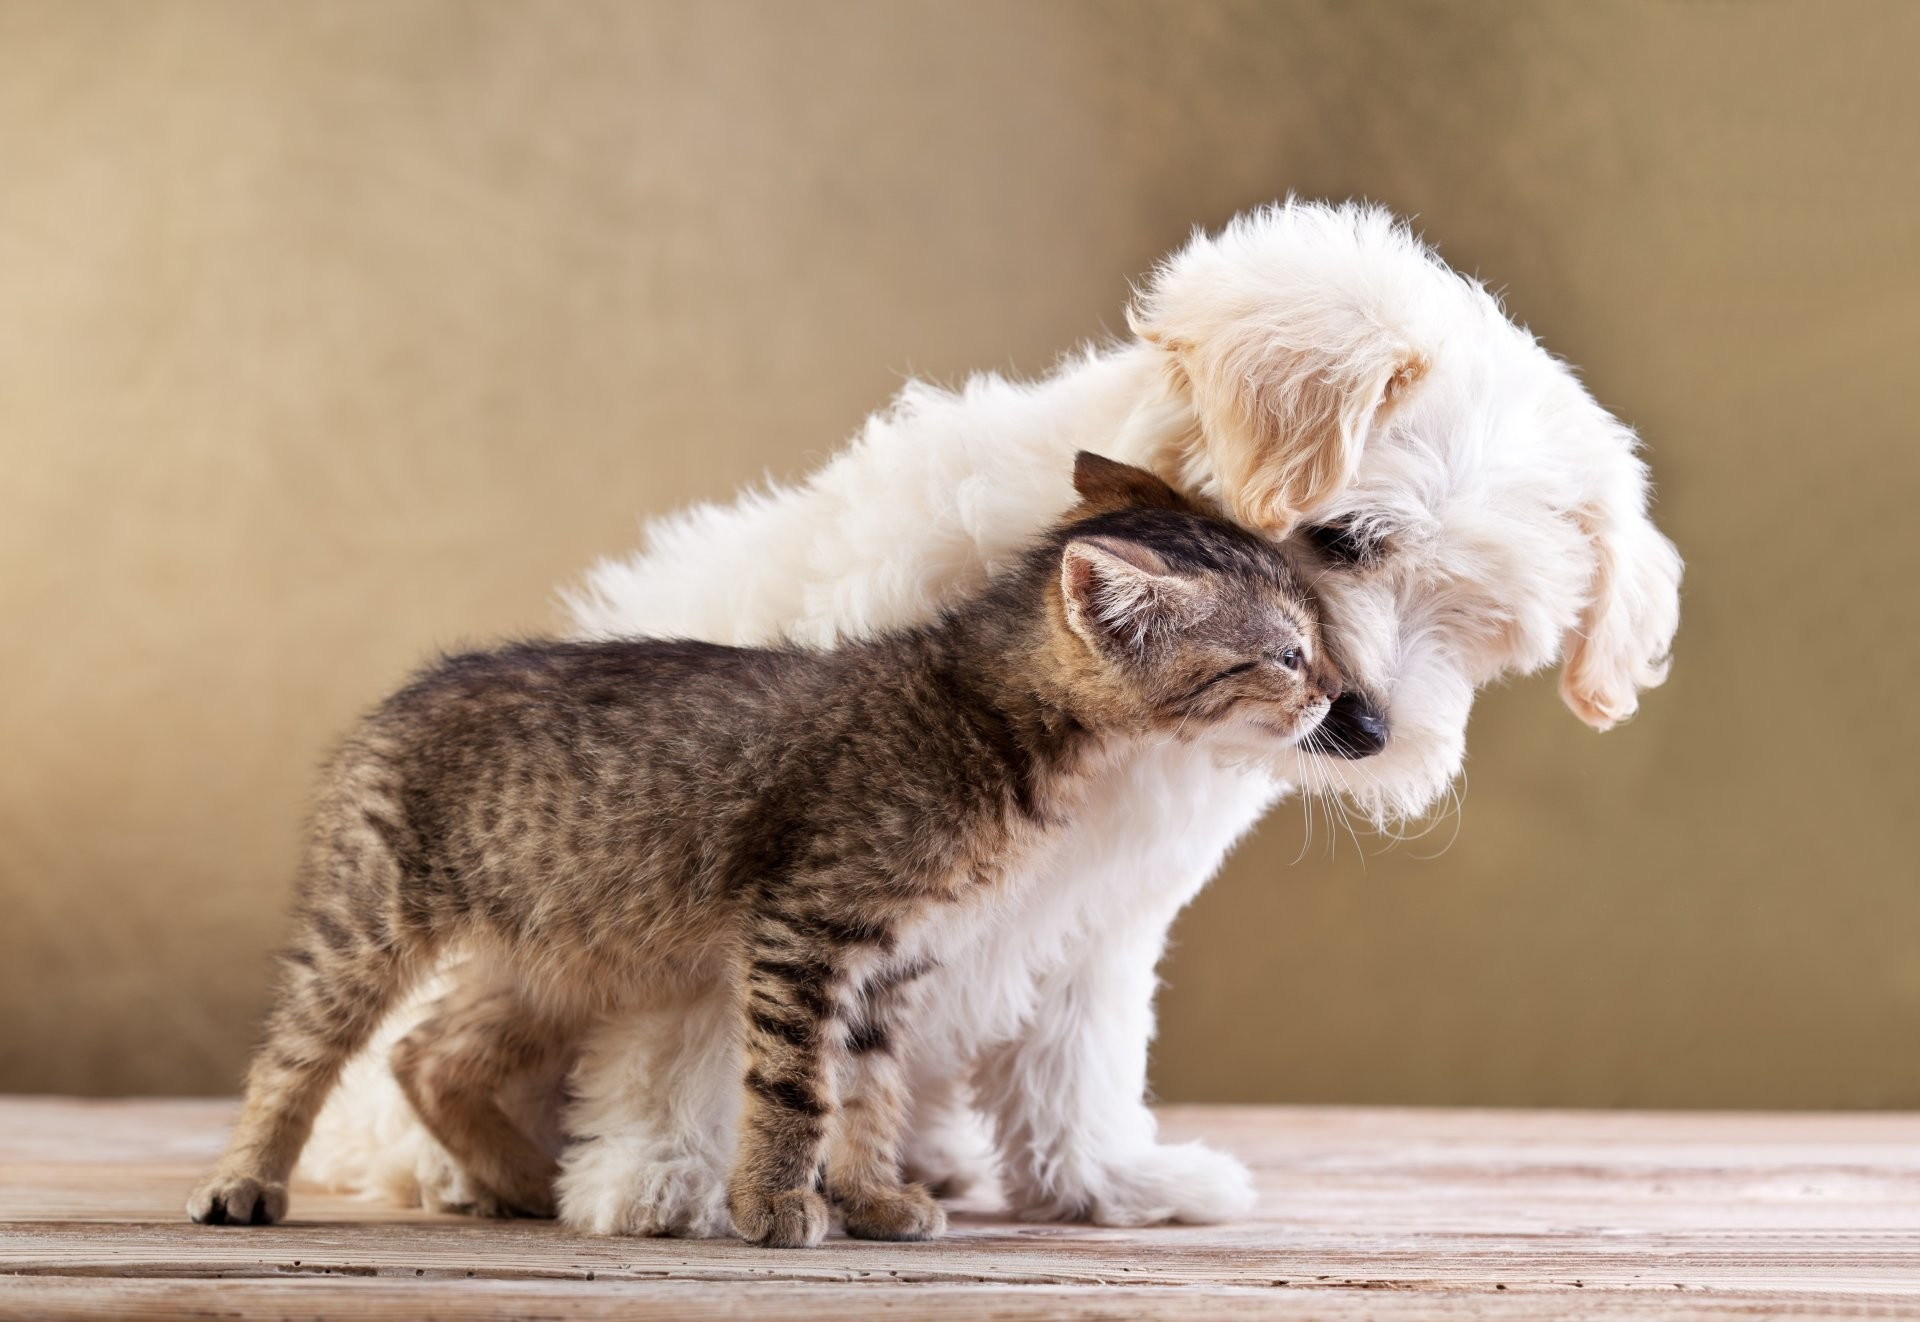 1920x1322 friends small dog and cat together puppy kitten love friends small dog cat  puppy kitten love